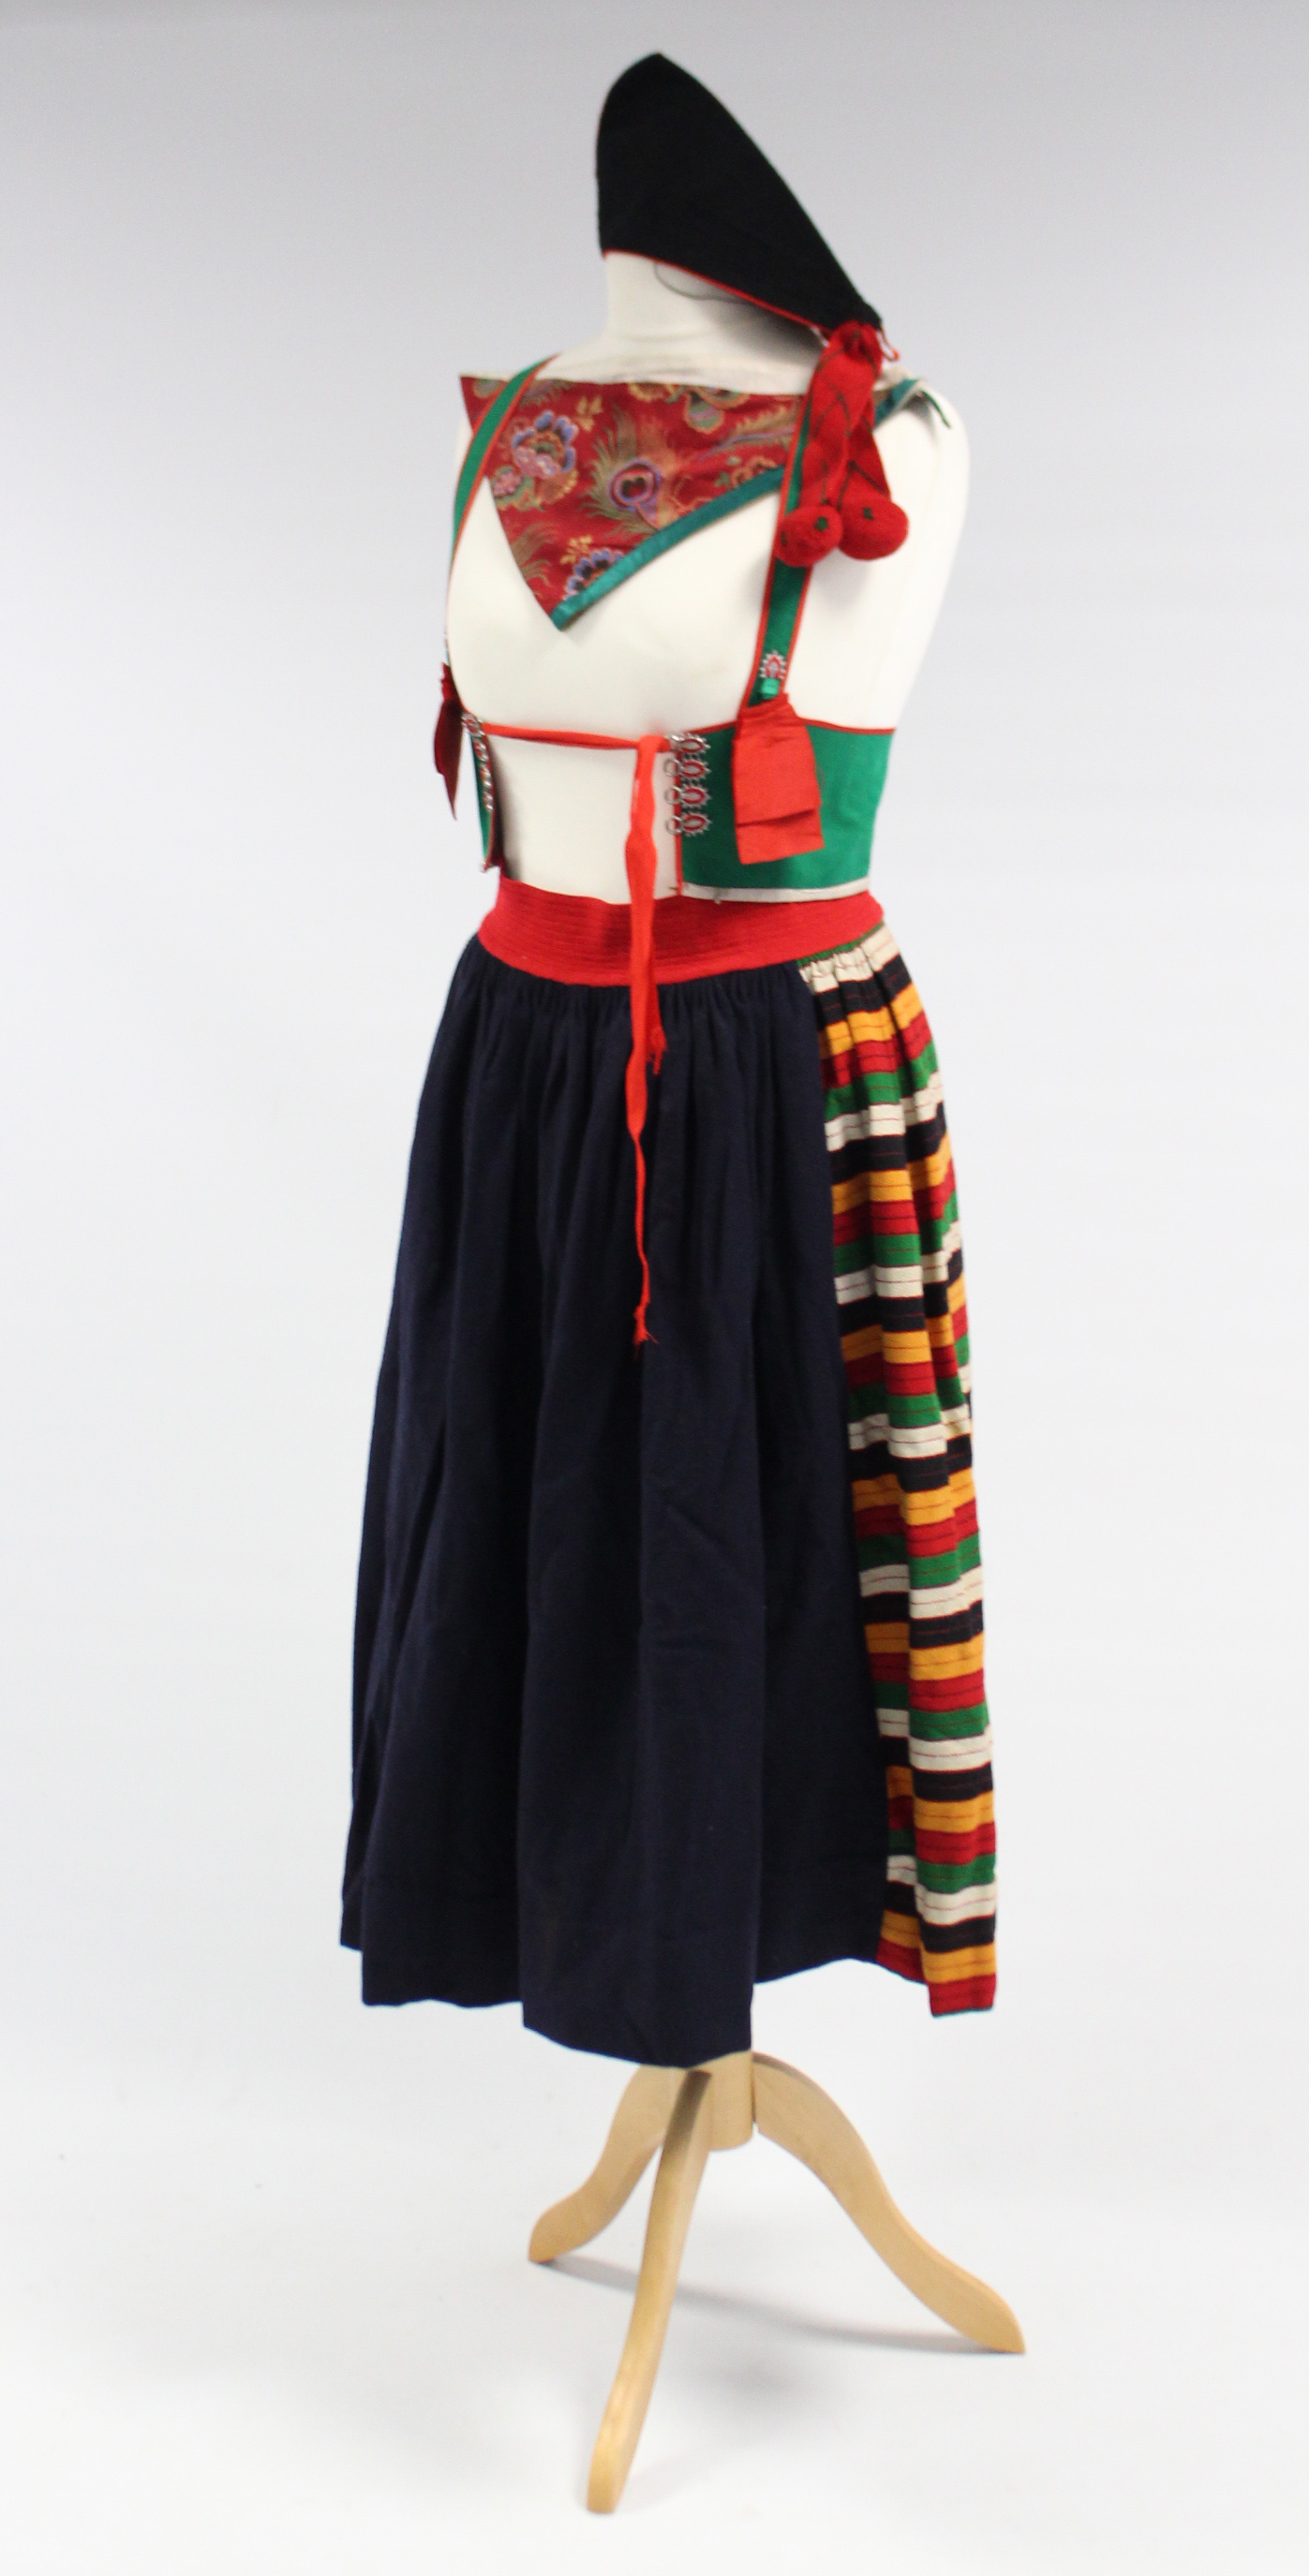 Lot 151 - A mid-20th century school girl's costume comprising a skirt, waistcoat, scarf & a hat.